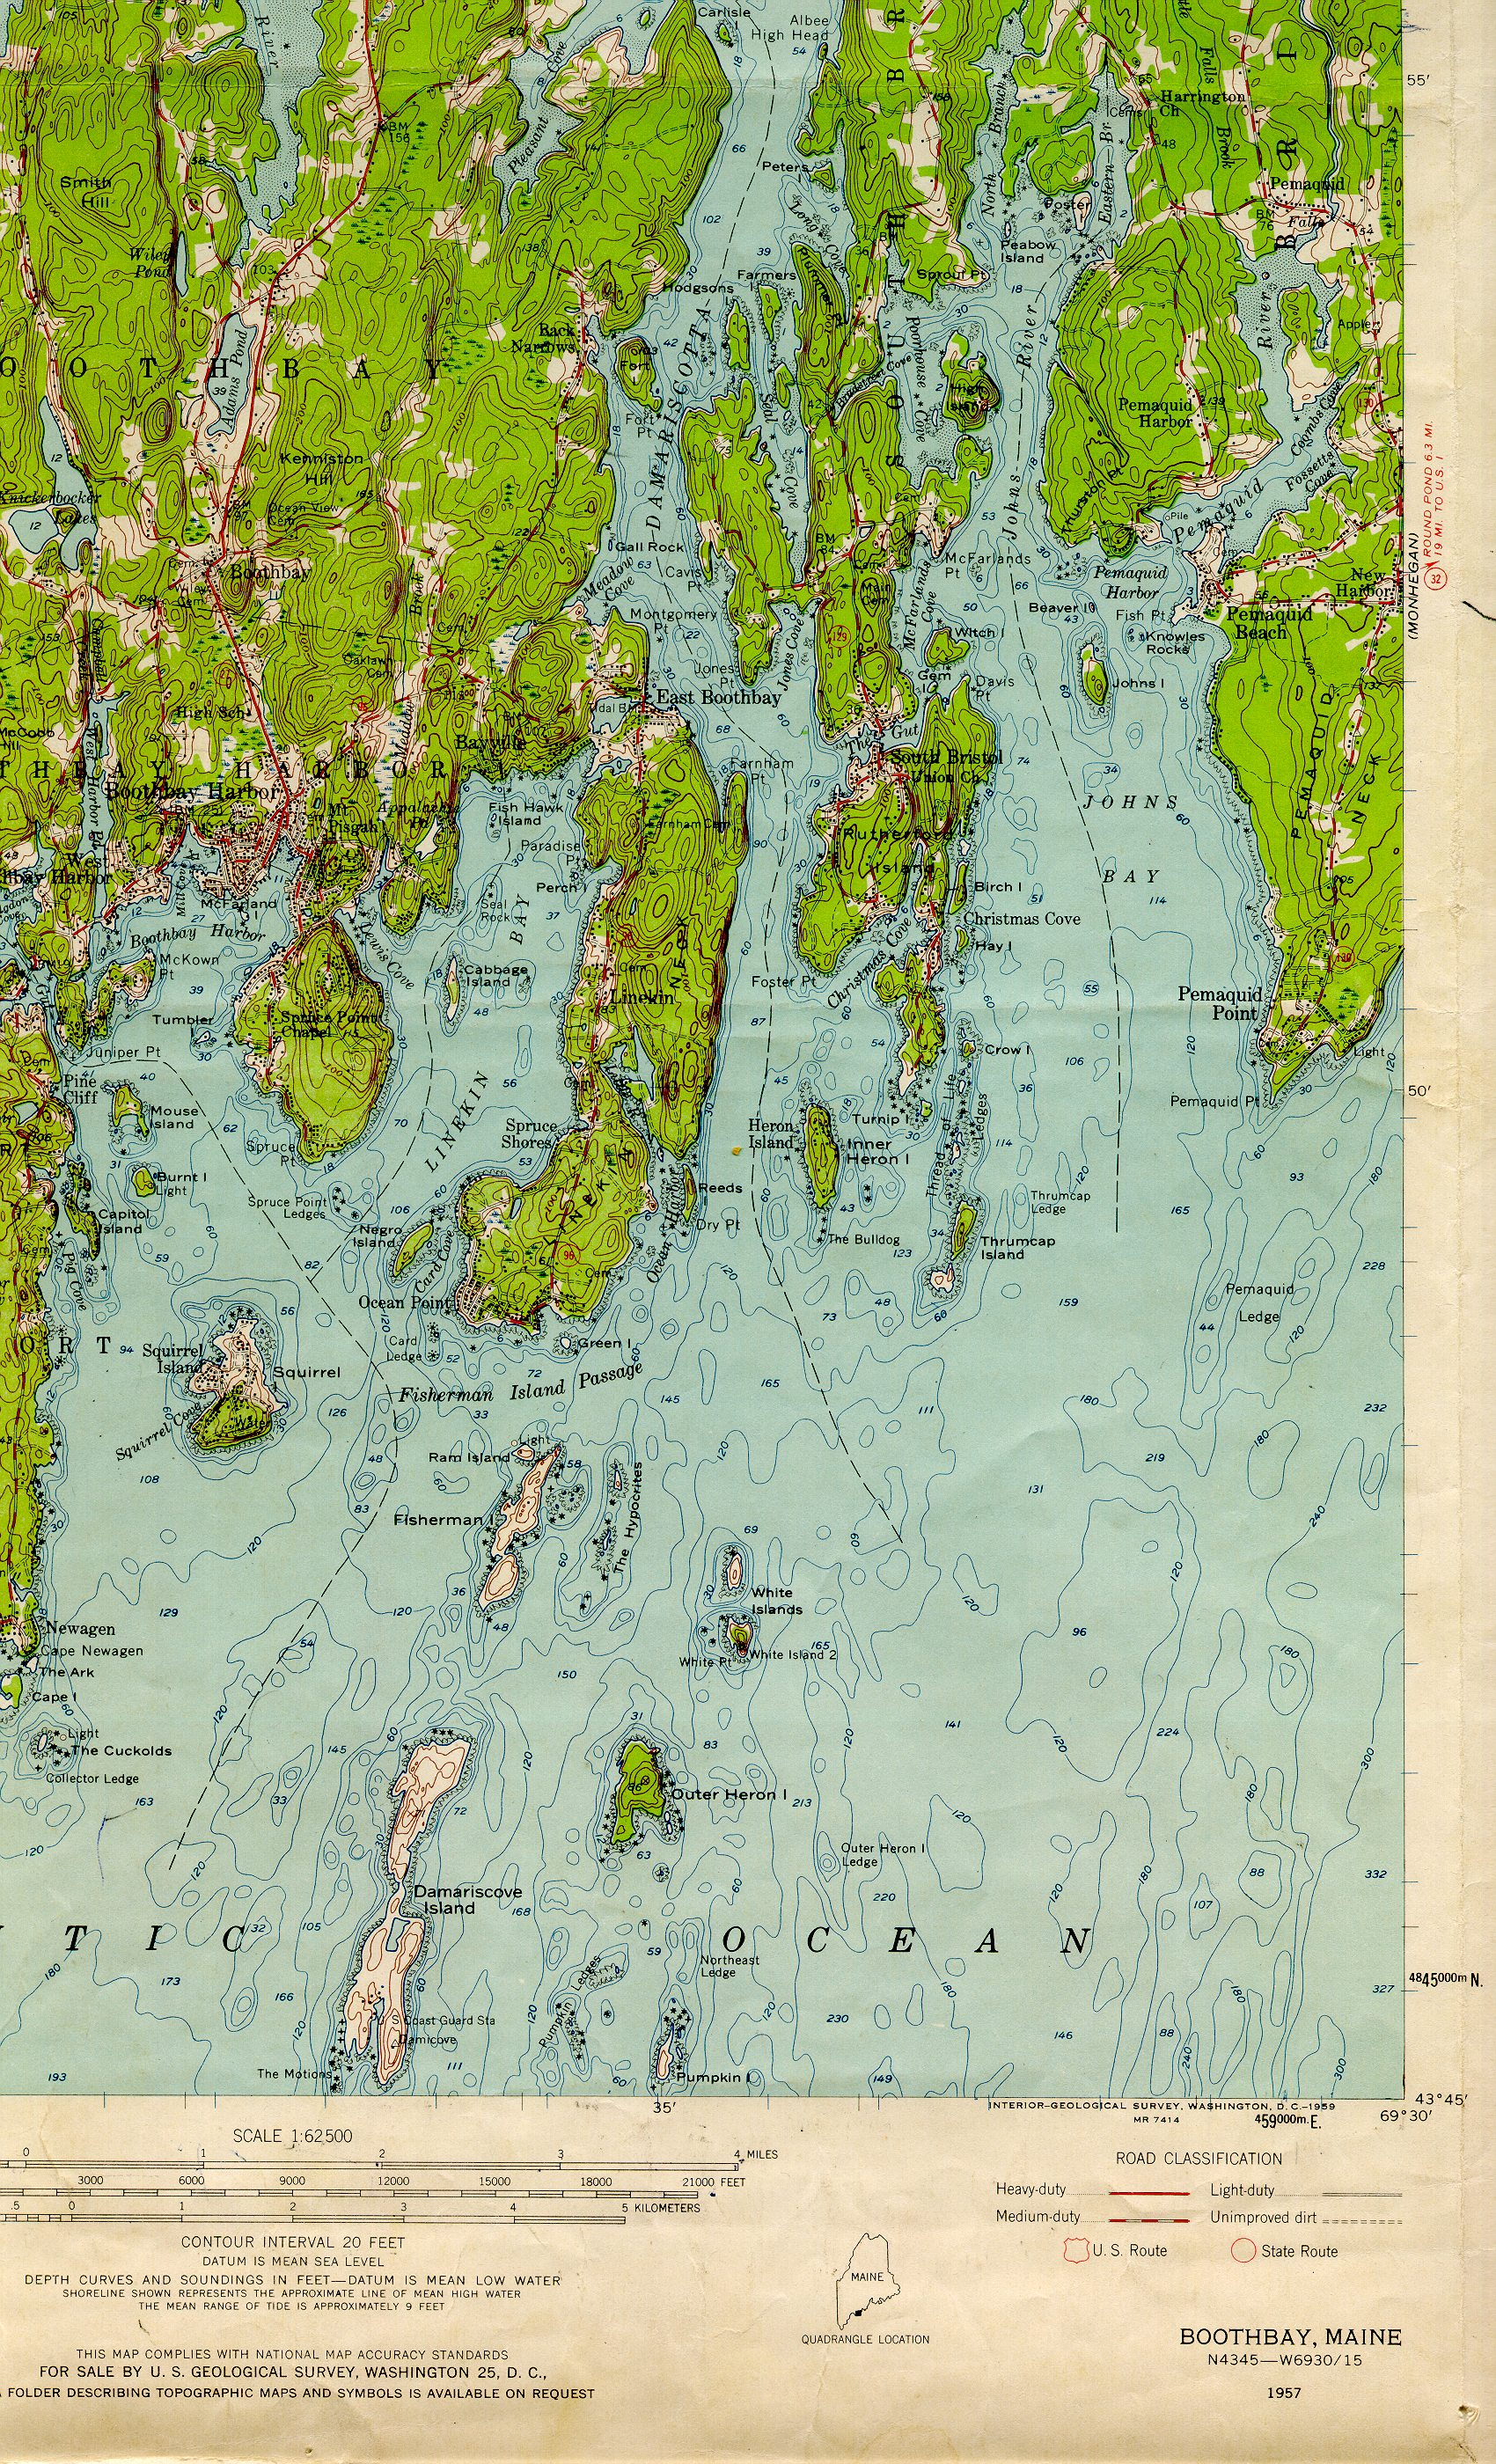 File:Maine-coast-USGS.jpg - Wikipedia on maine school districts map, acadia maine map, blue hill maine map, midcoast maine map, state of maine map, maine bay map, gorham maine street map, maine western map, maine woods map, maine storm map, maine east map, camden maine map, maine harbor map, maine oregon map, maine desert map, maine north map, new orleans map, maine mall portland maine map, maine map with latitude and longitude, bar harbor map,